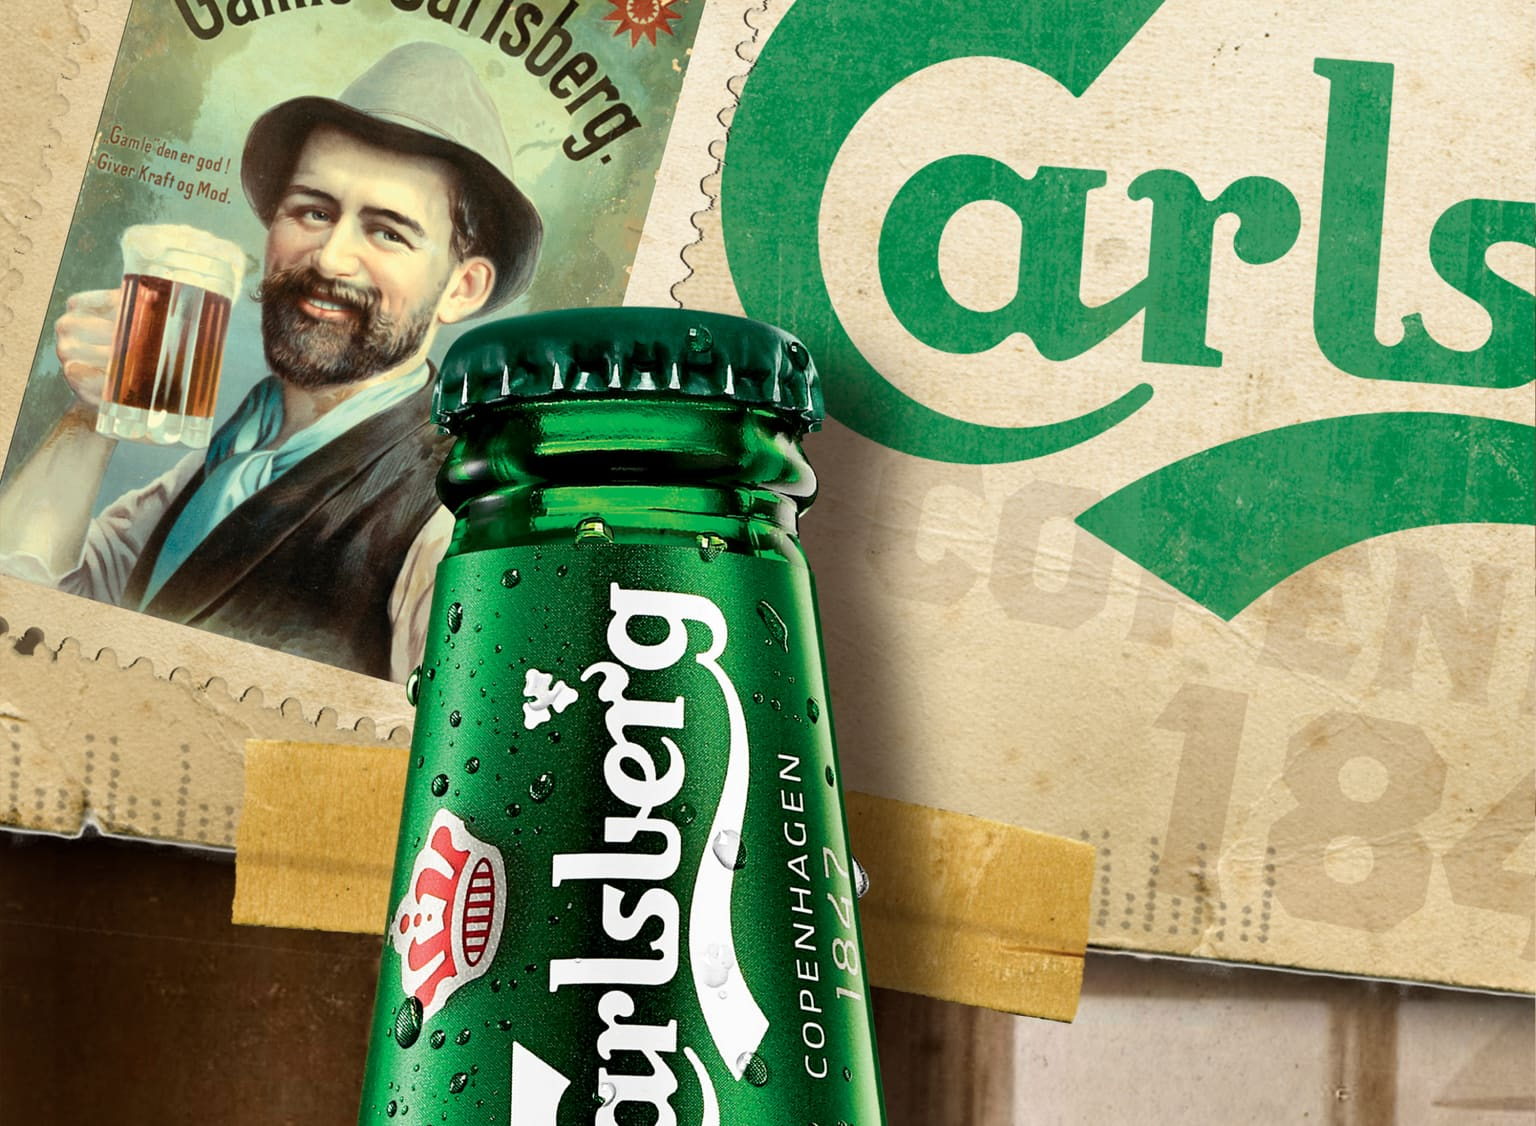 Carlsberg Heritage Poster and Localized Posters